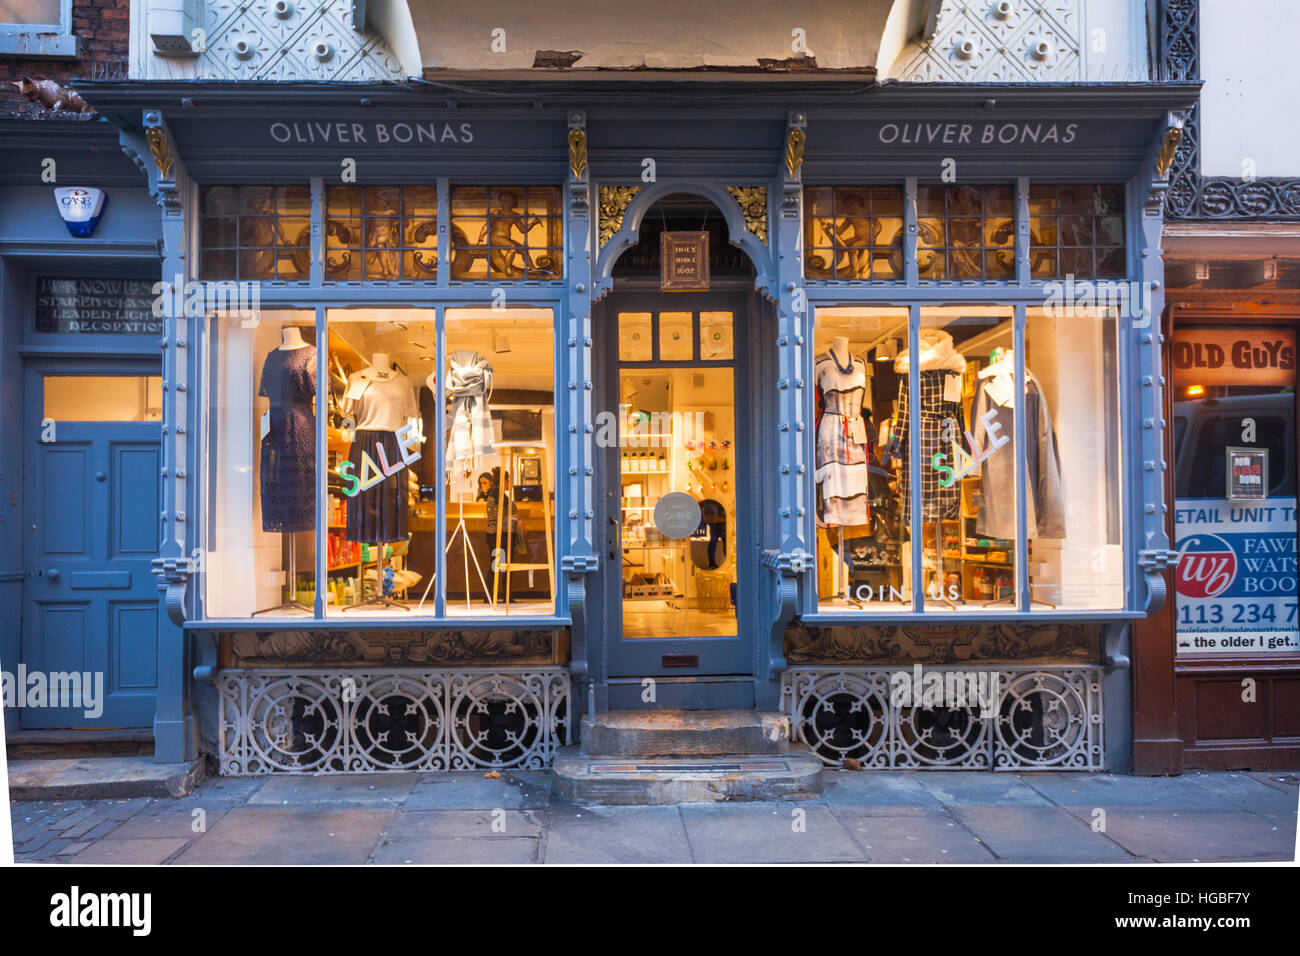 Shop front in The Shambles, famous medieval shopping street in York city centre, UK - Stock Image